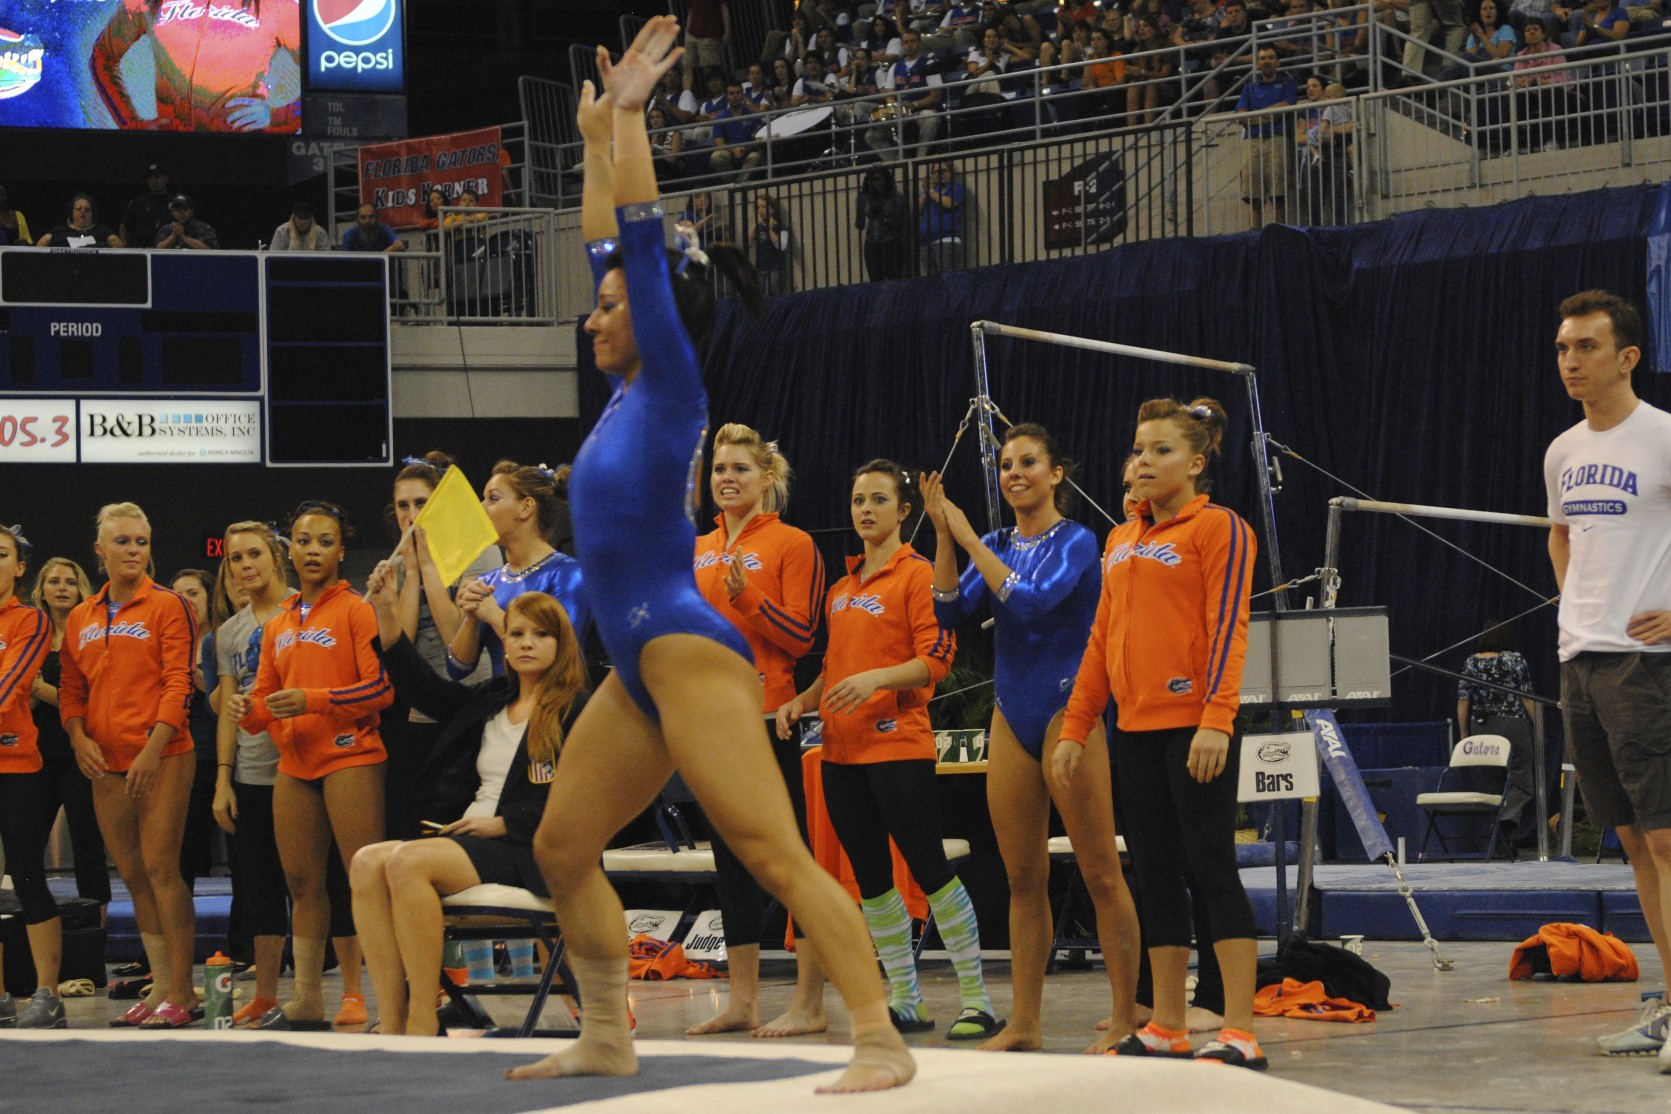 Junior Marissa King uncharacteristically stepped out of bounds during her floor routine and received a score of 9.80.